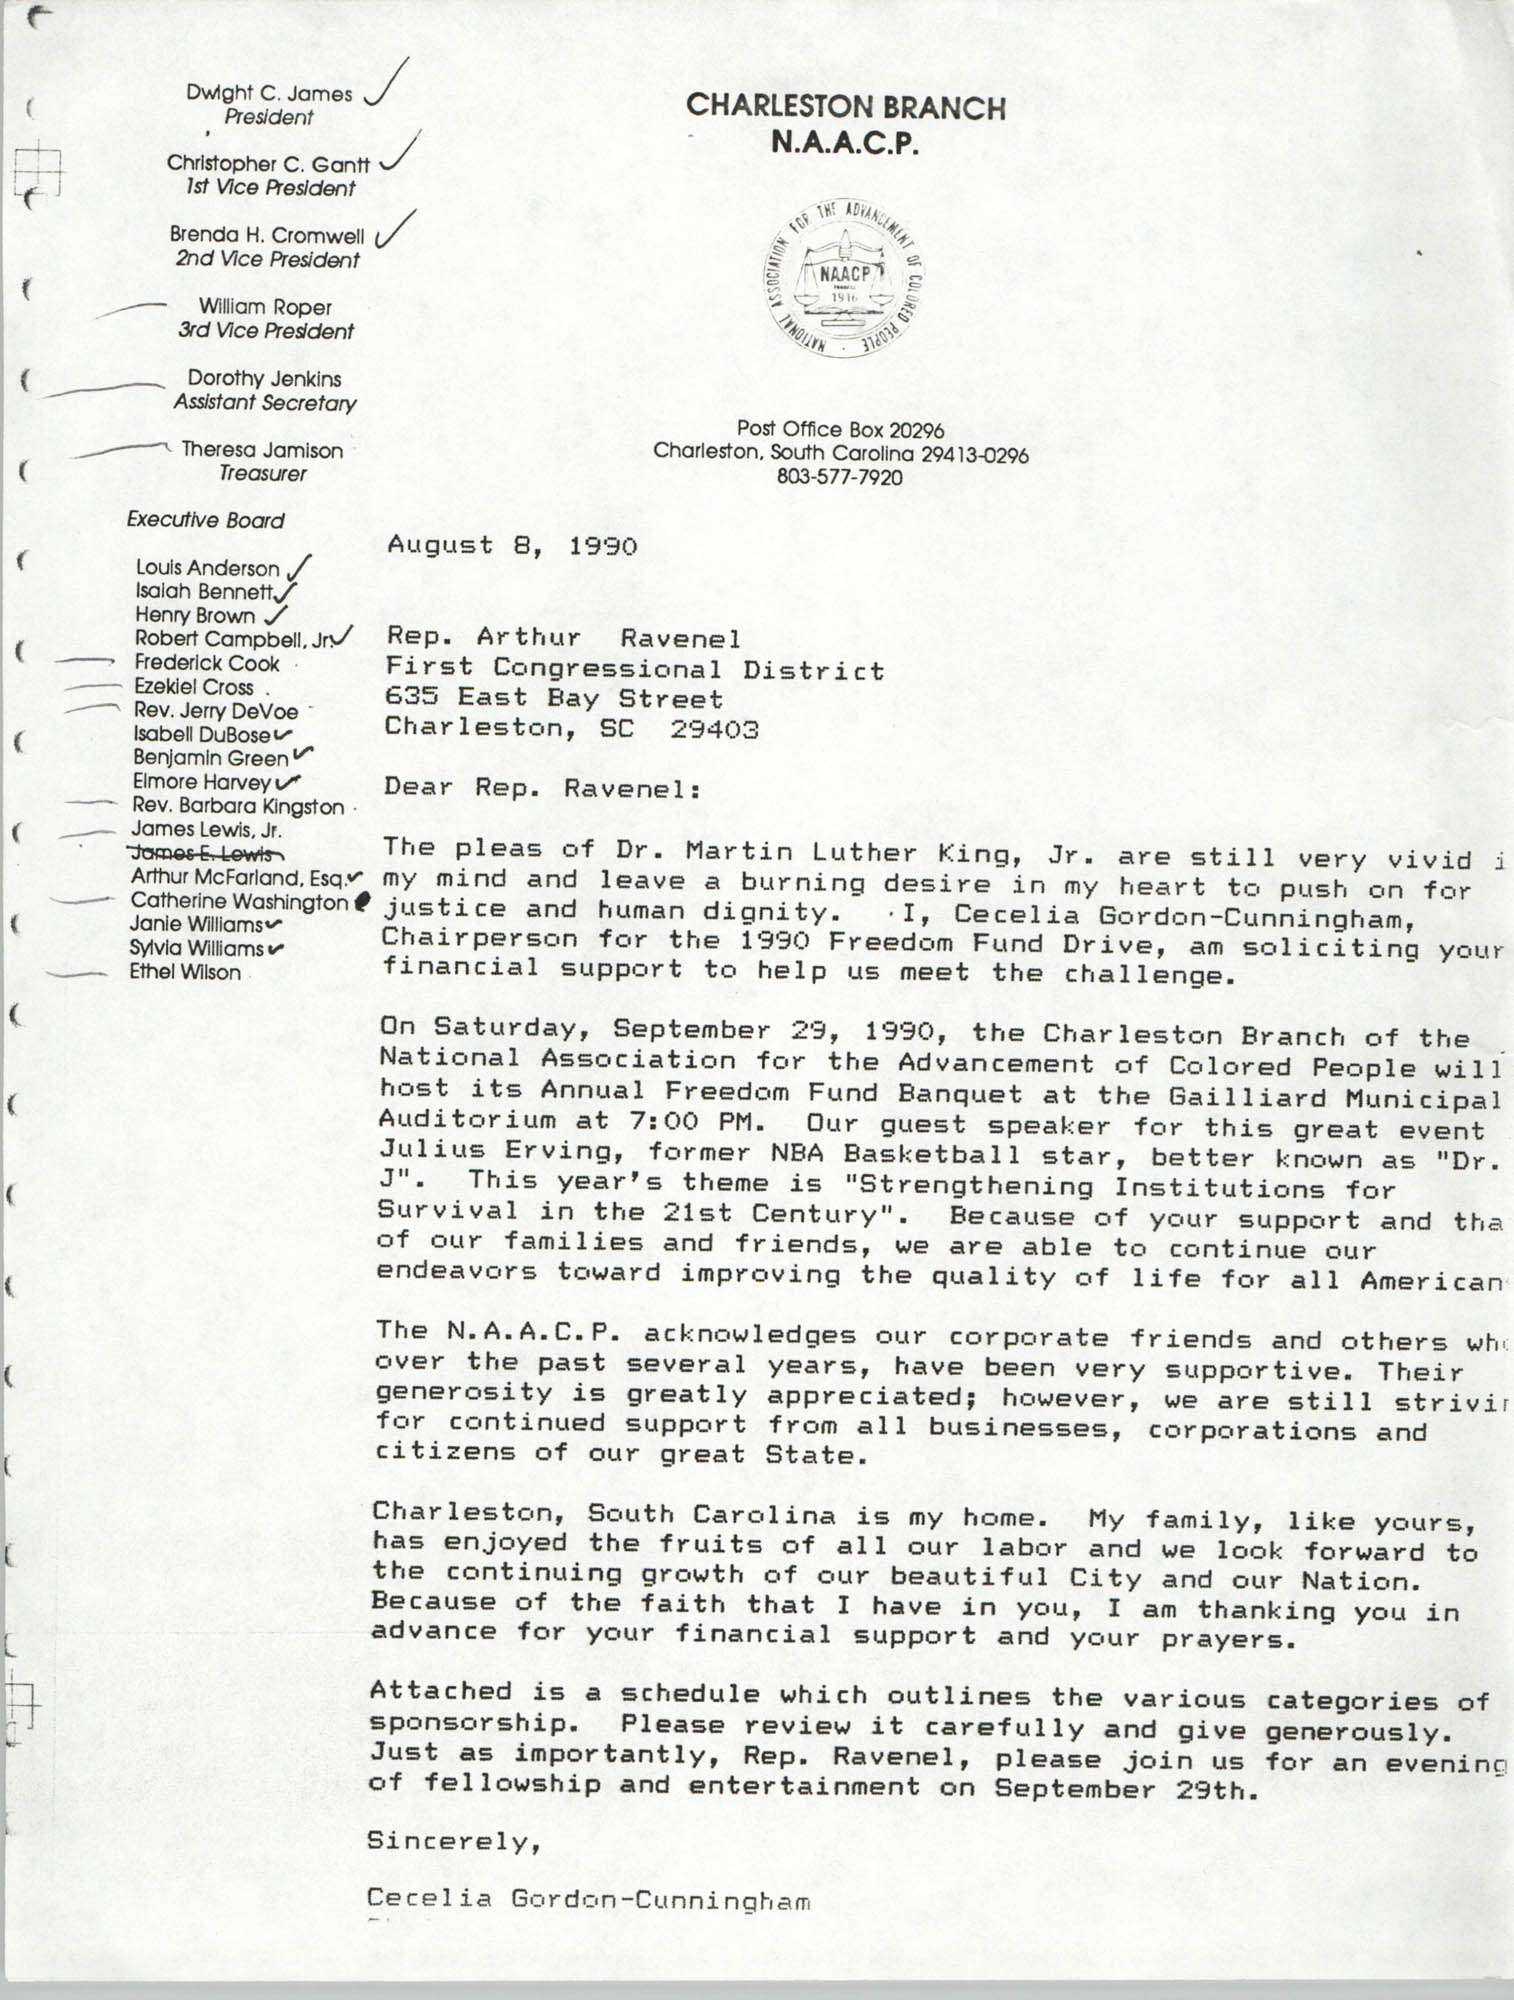 Letter from Cecilia Gordon-Cunningham to Arthur Ravenel, August 8, 1990